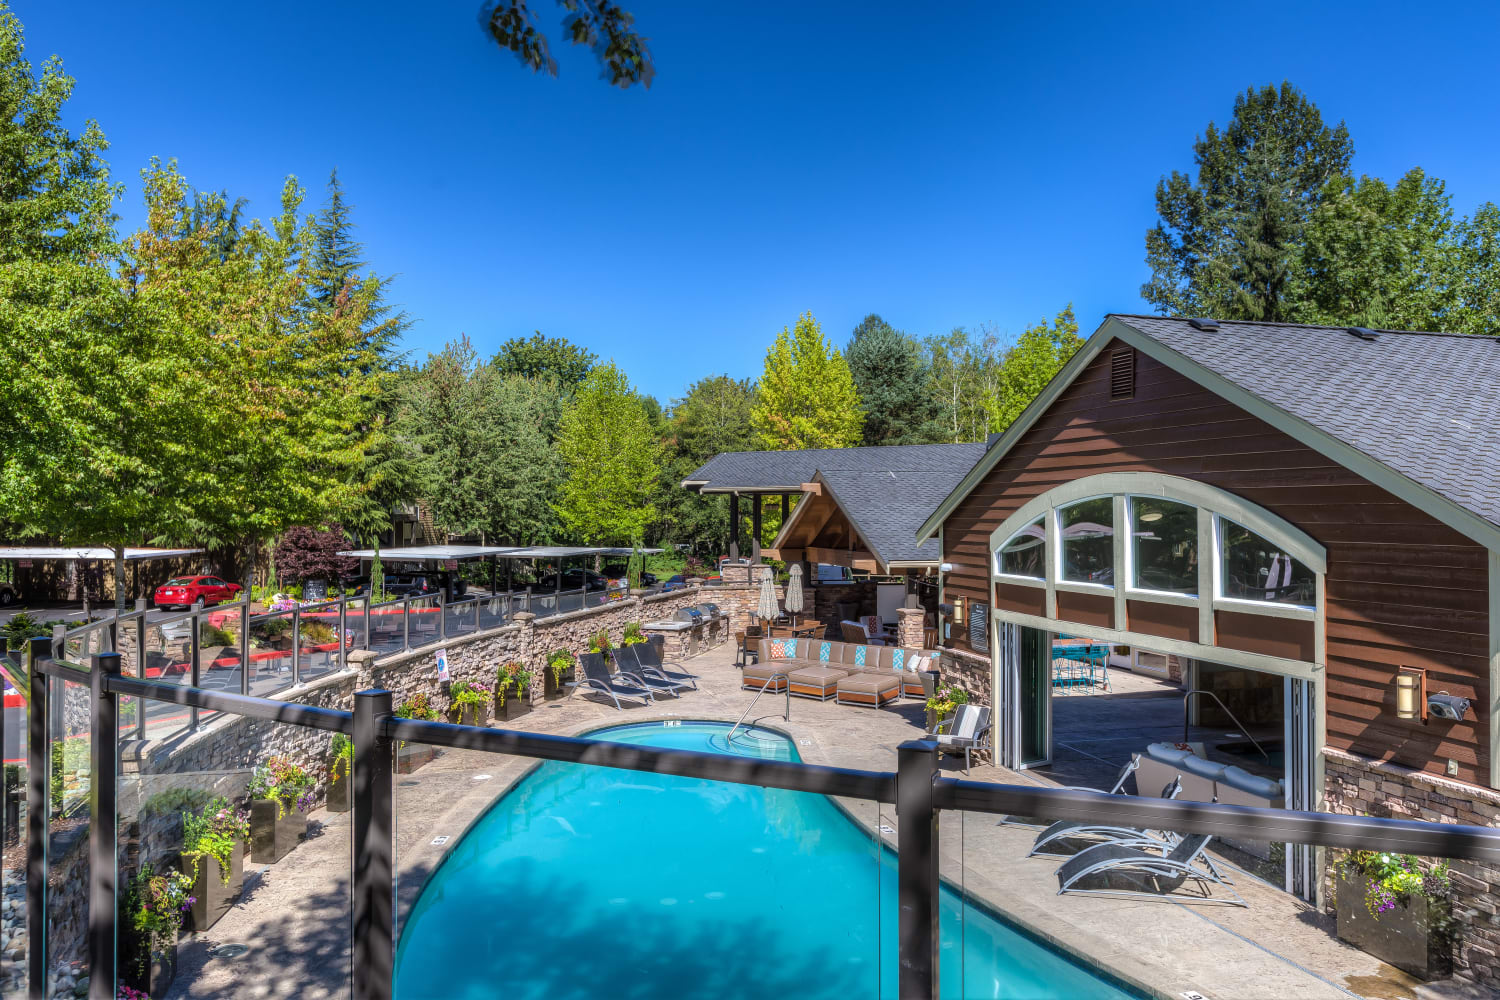 The bright blue outdoor pool at The Preserve at Forbes Creek in Kirkland, Washington